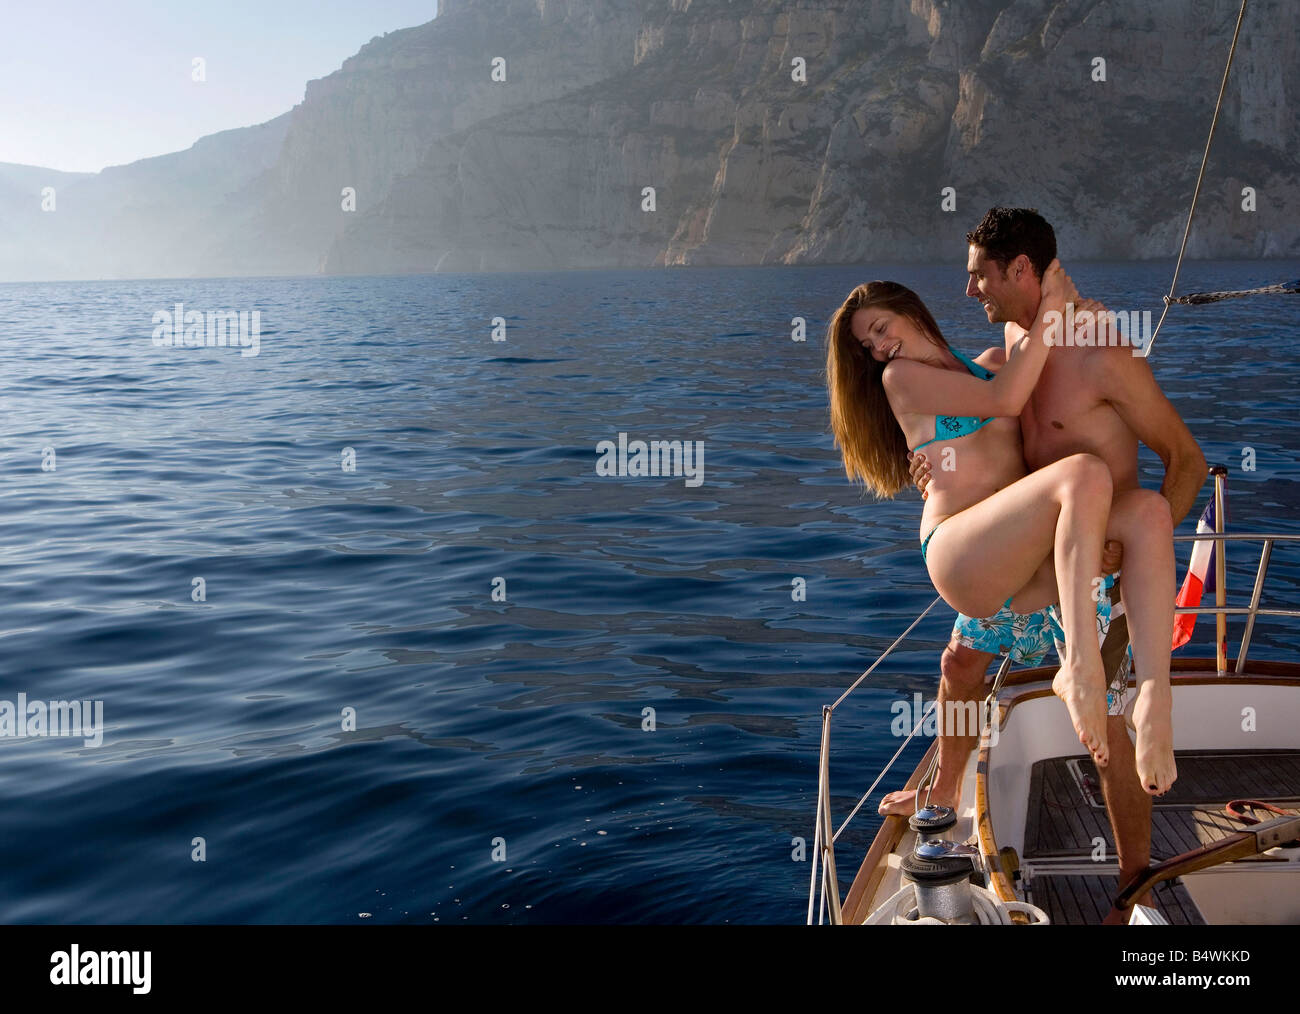 Man lifts girl to sailboats edge - Stock Image